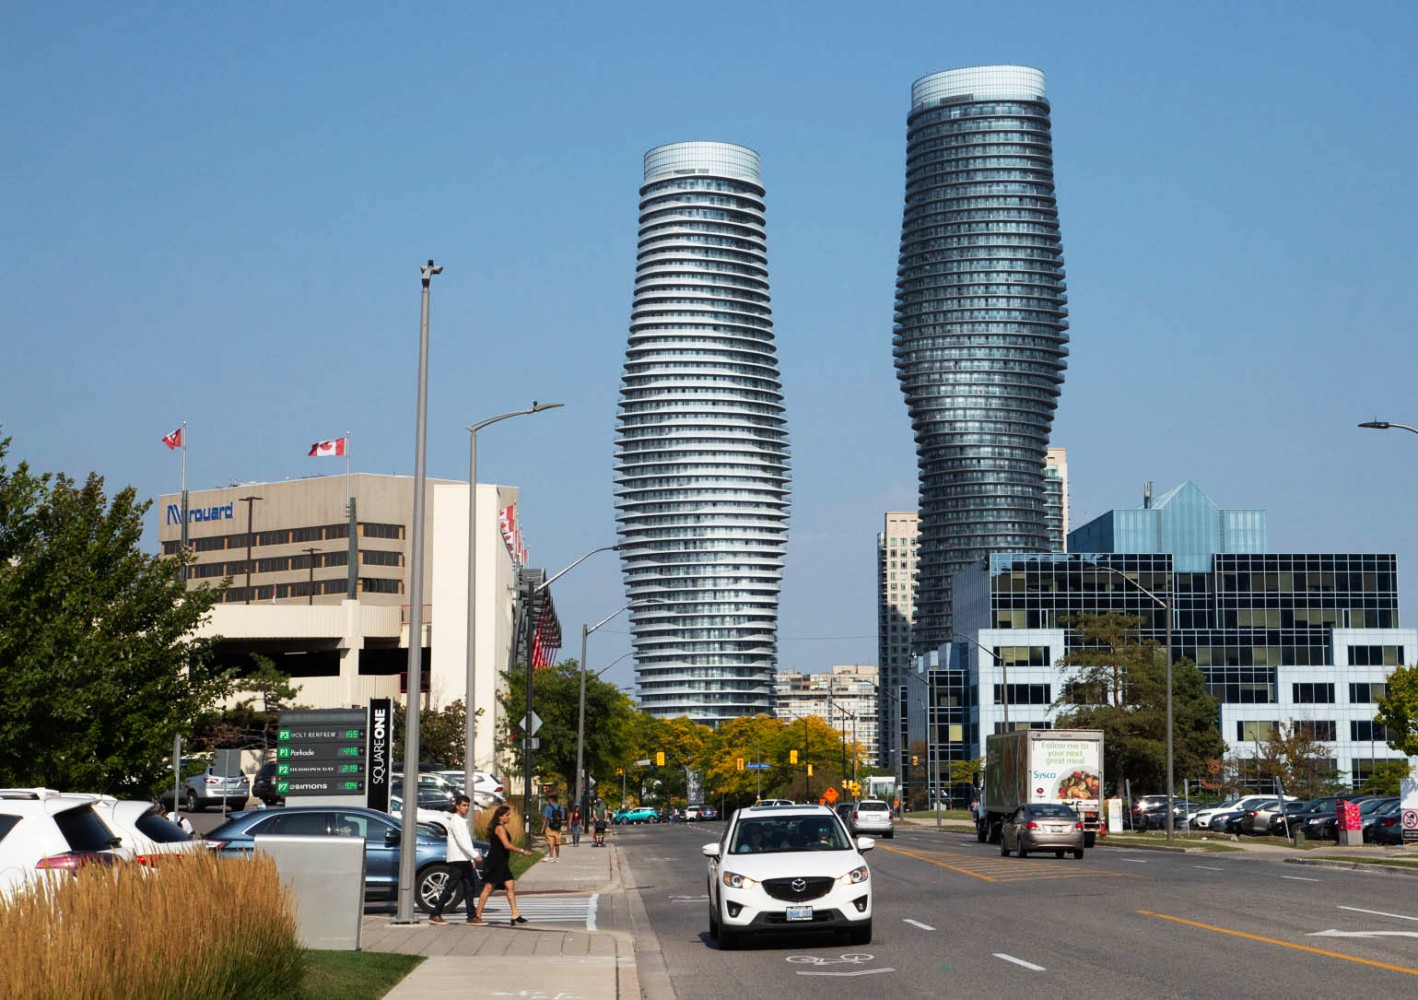 Mississauga's commitment to pedestrian safety tested as draft budget boosts spending